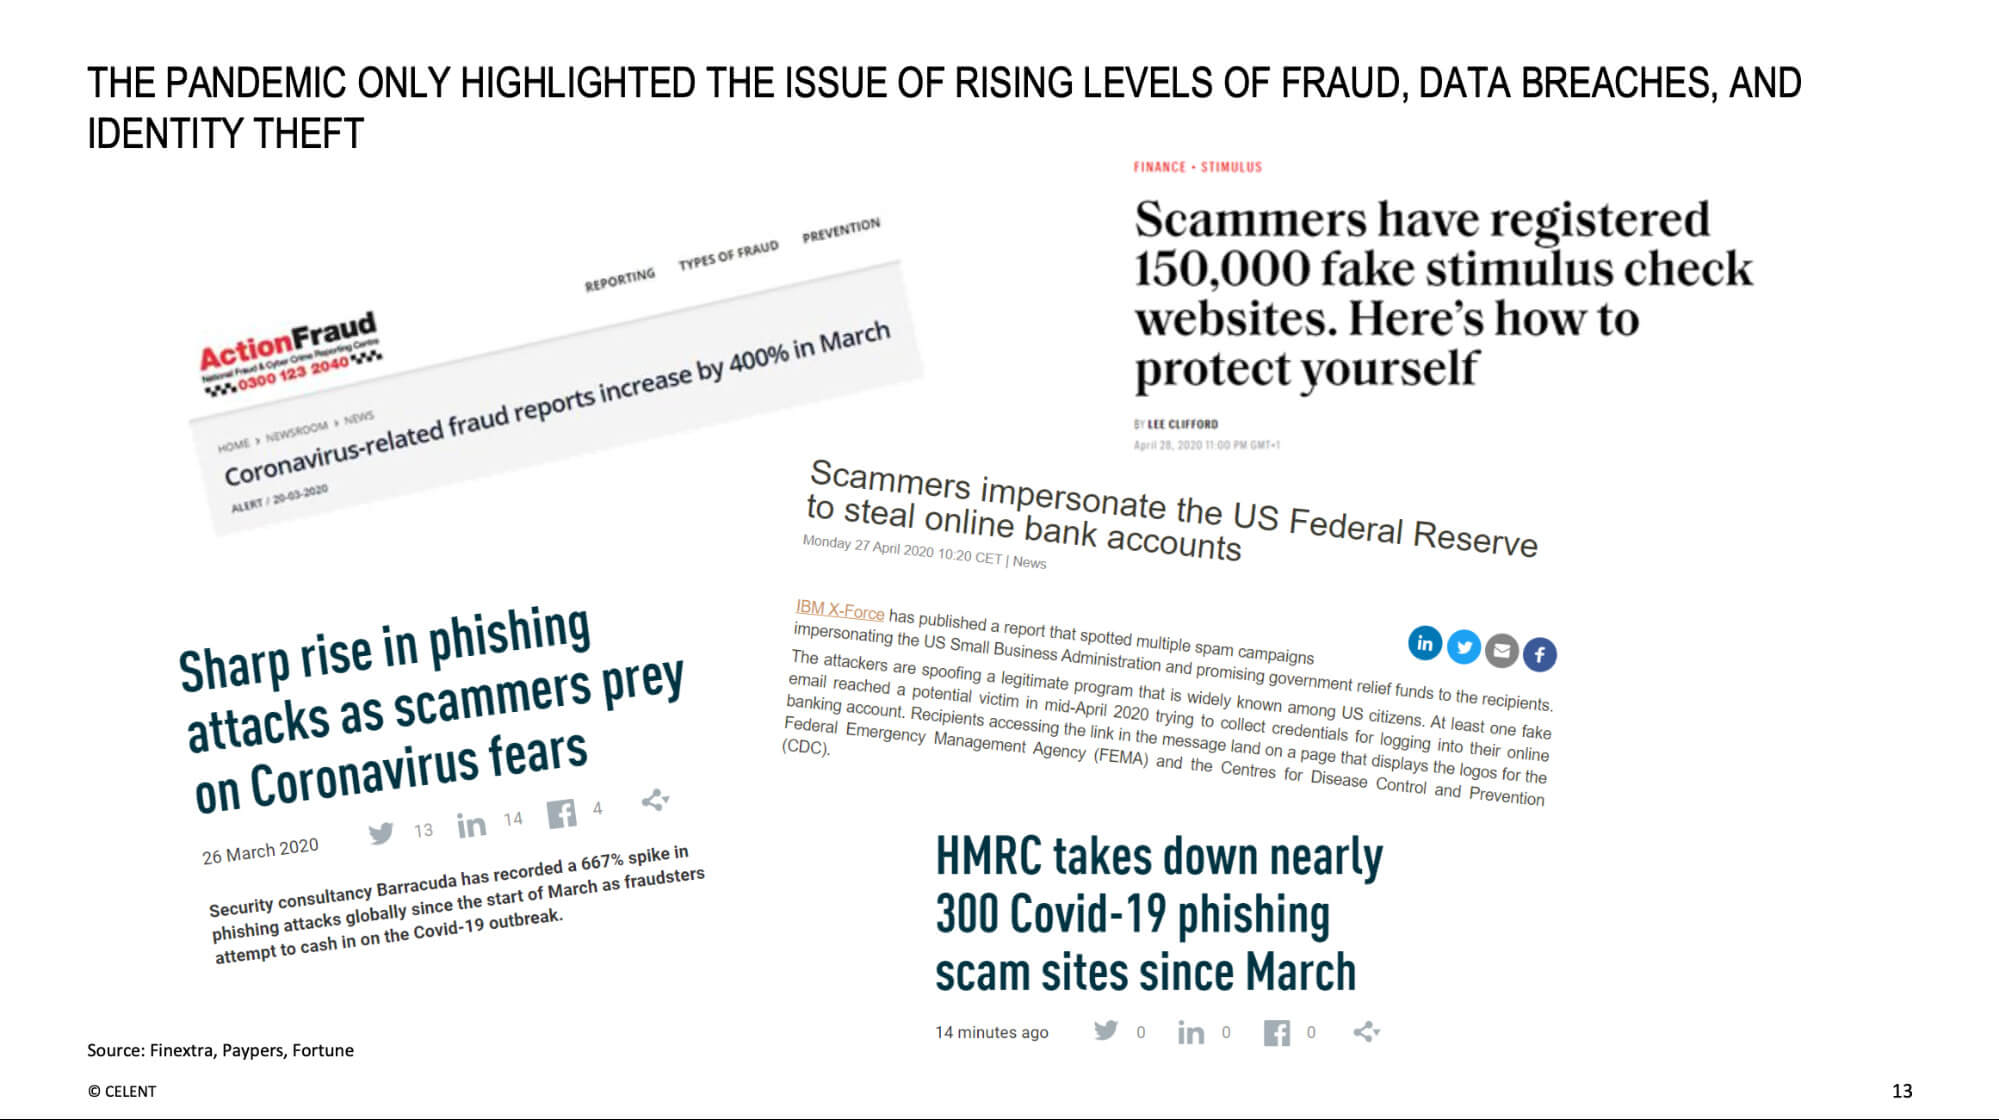 The pandemic only highlighted the issue of rising levels of fraud, data breaches, and identity theft